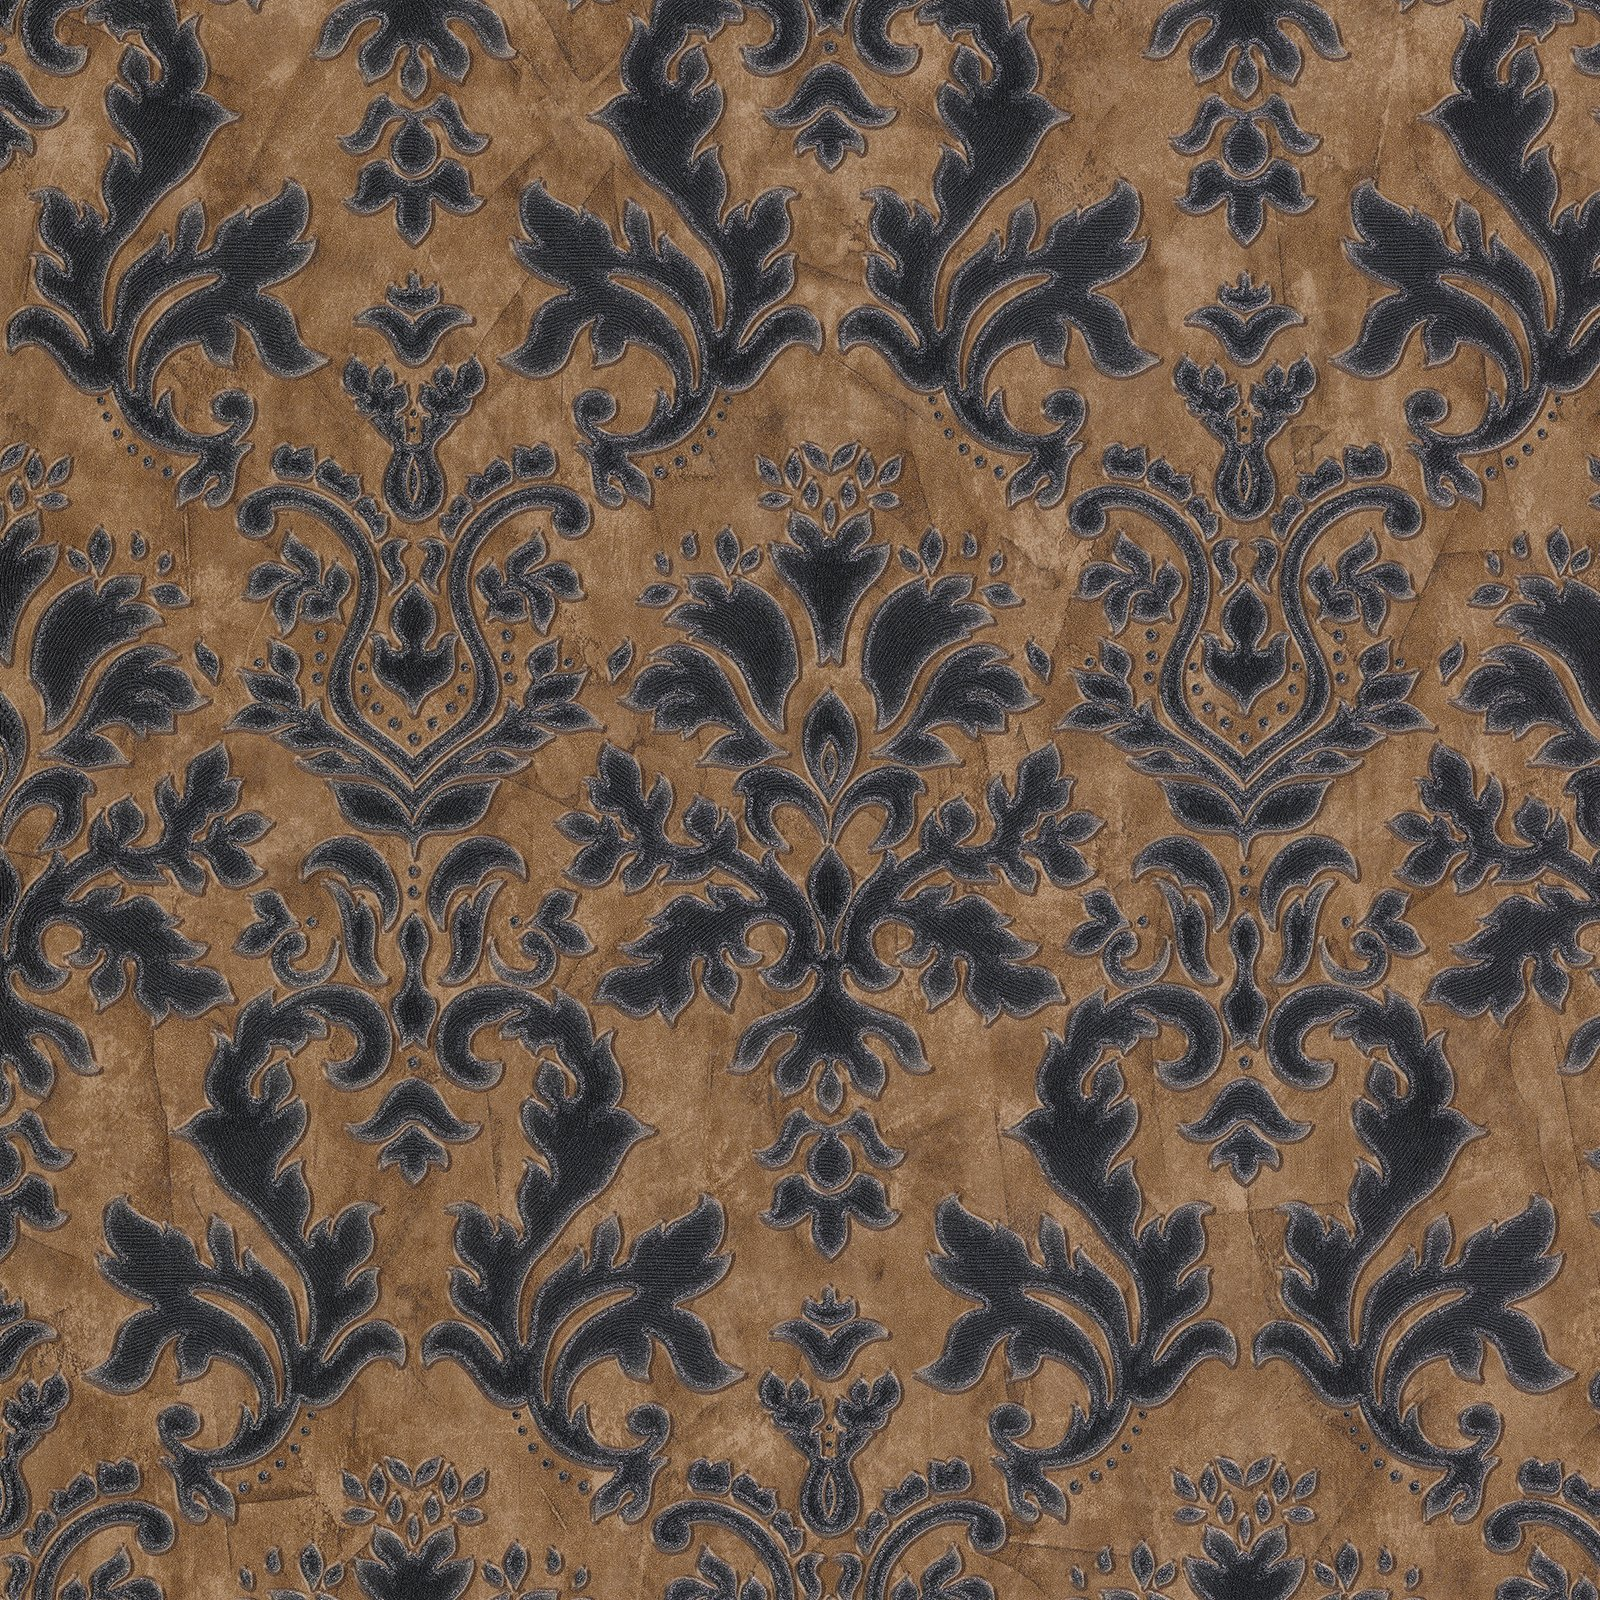 Textured Vinyl Damask Wallpaper Brown, Black and Silver P+S 02485-40